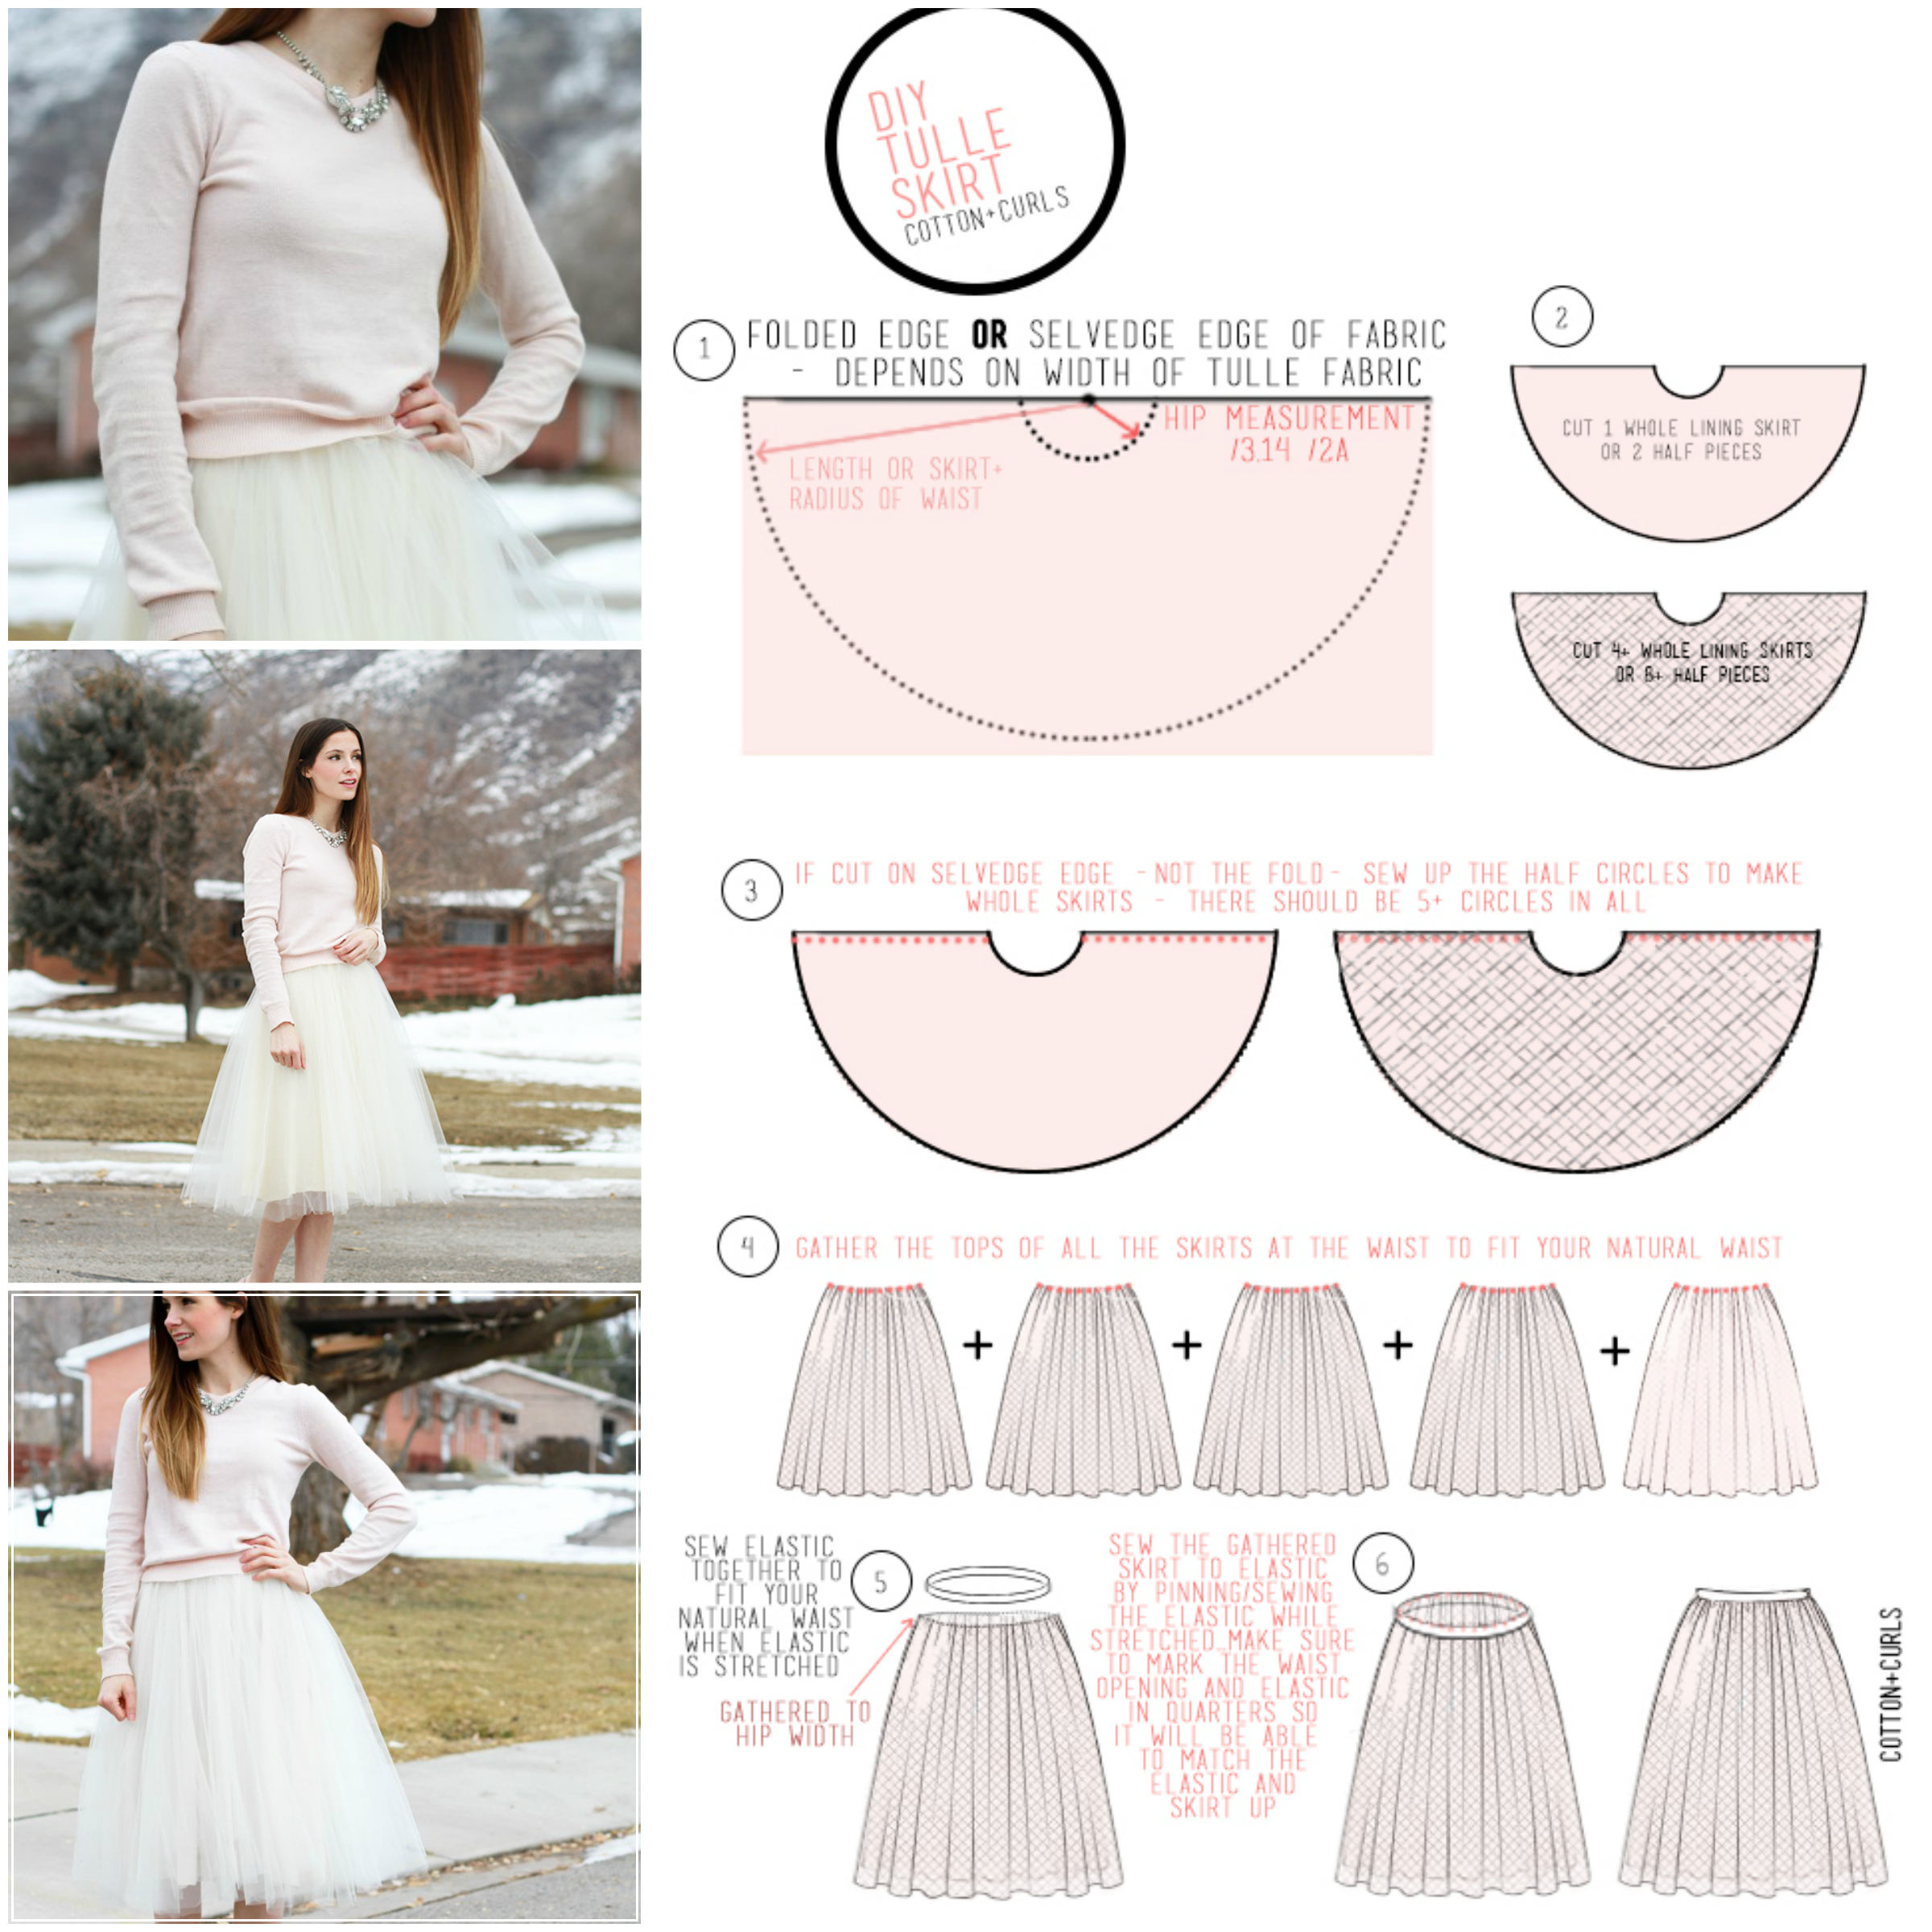 VERY SIMPLE TULLE SKIRT TUTORIAL by Cotton and Curls   Ropa ...